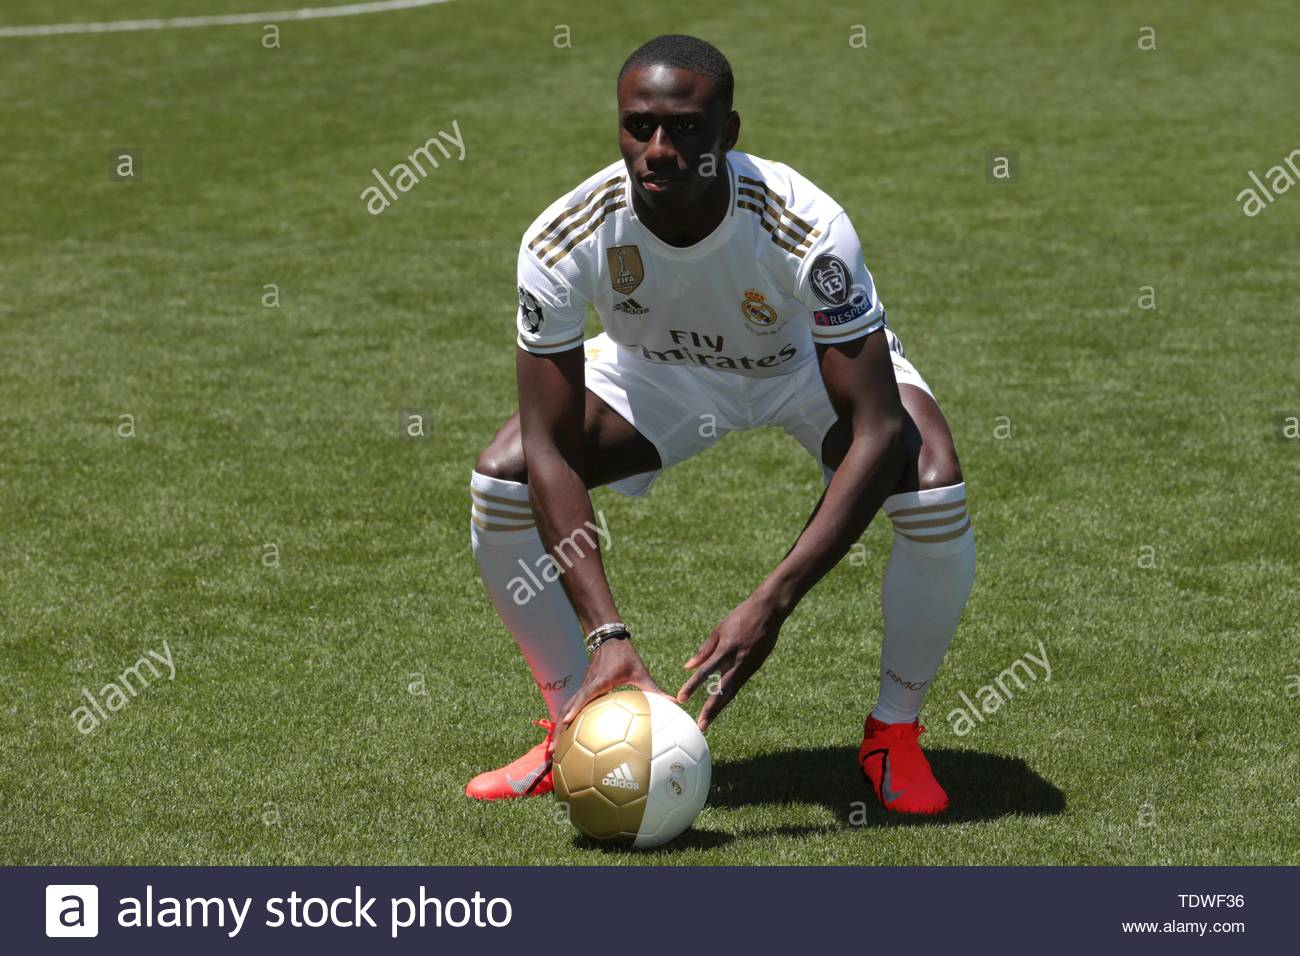 Ferland Mendy High Resolution Stock Photography and Images   Alamy 1300x956